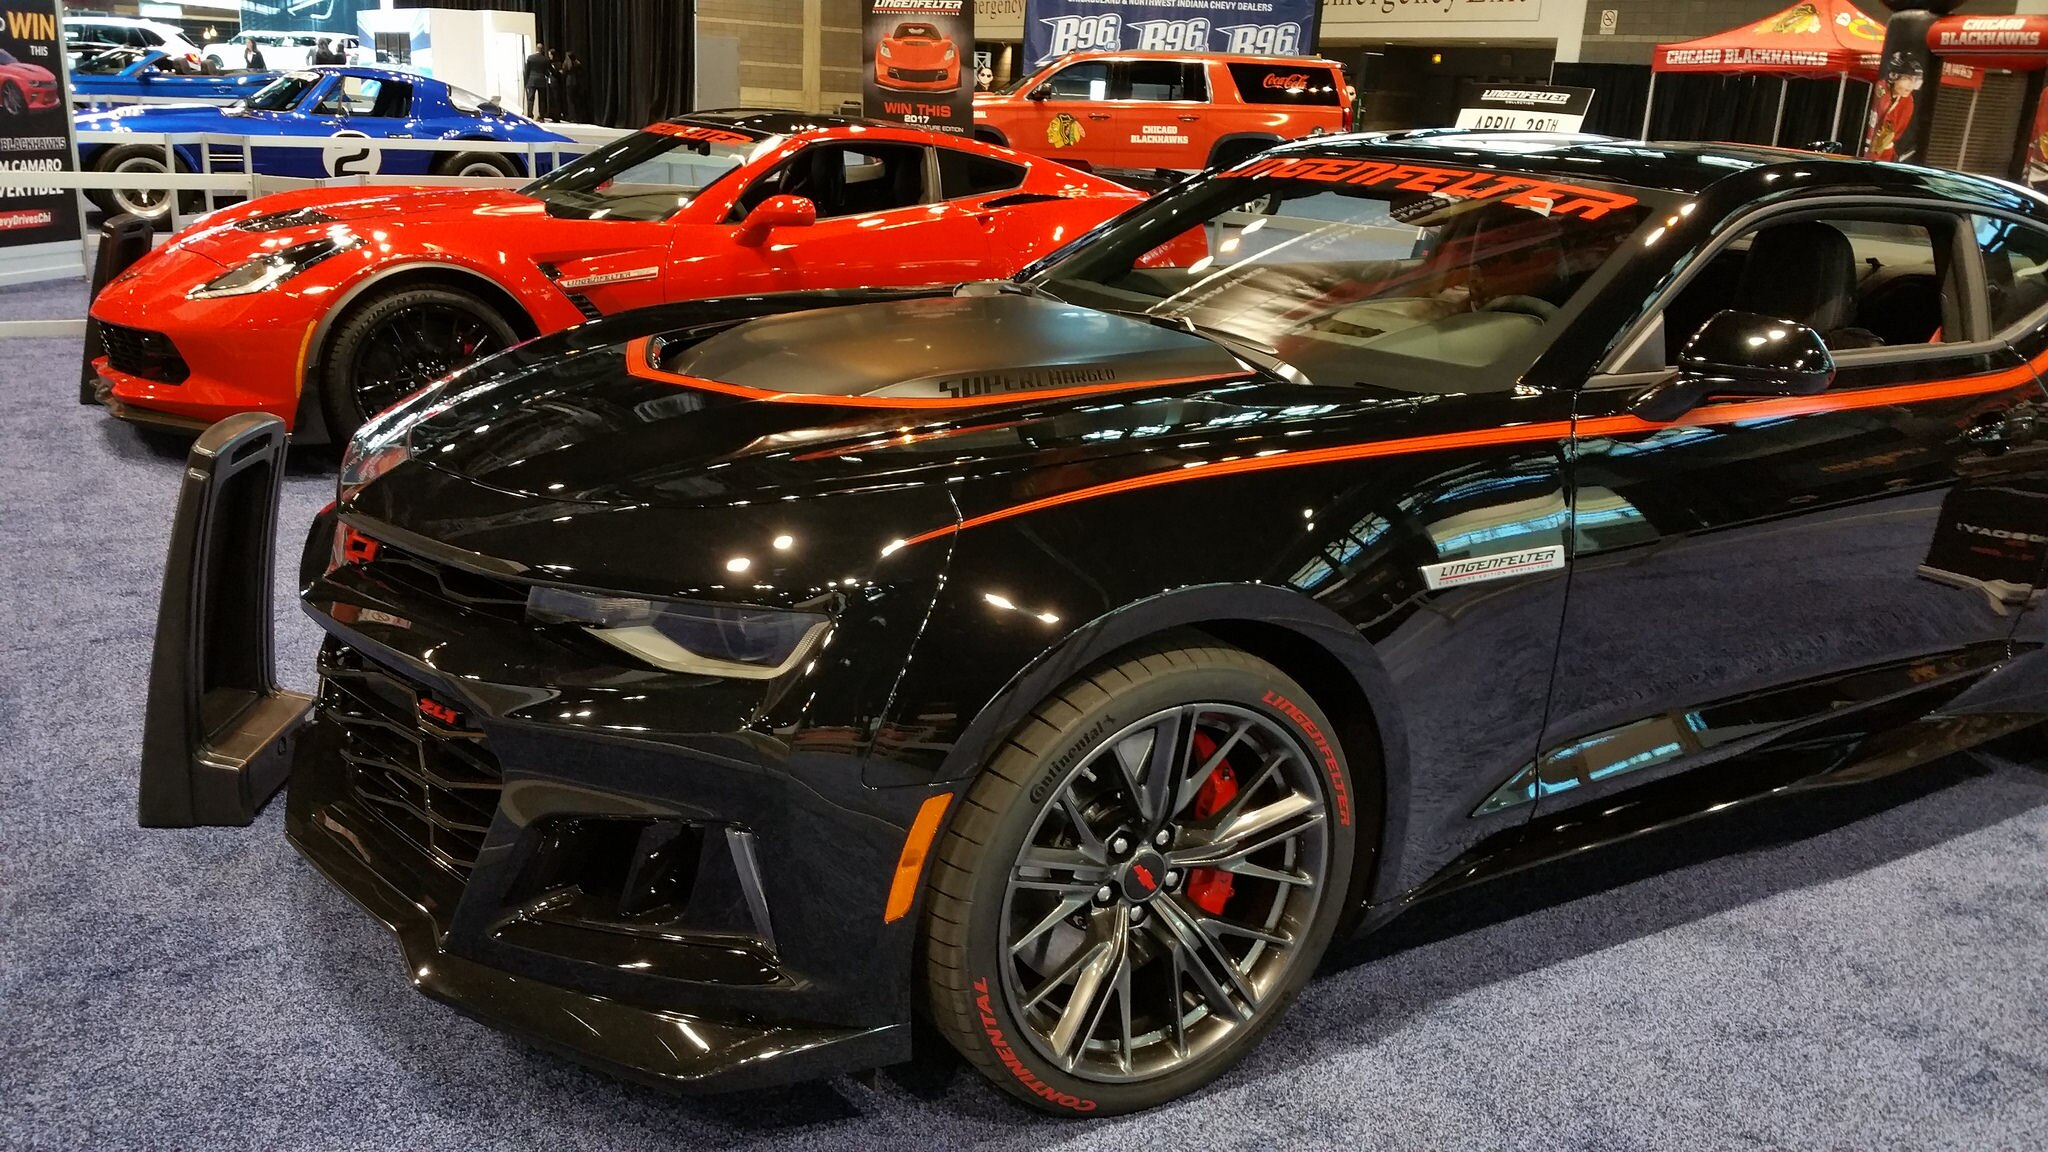 Zl1 Camaro Raffle Autos Post